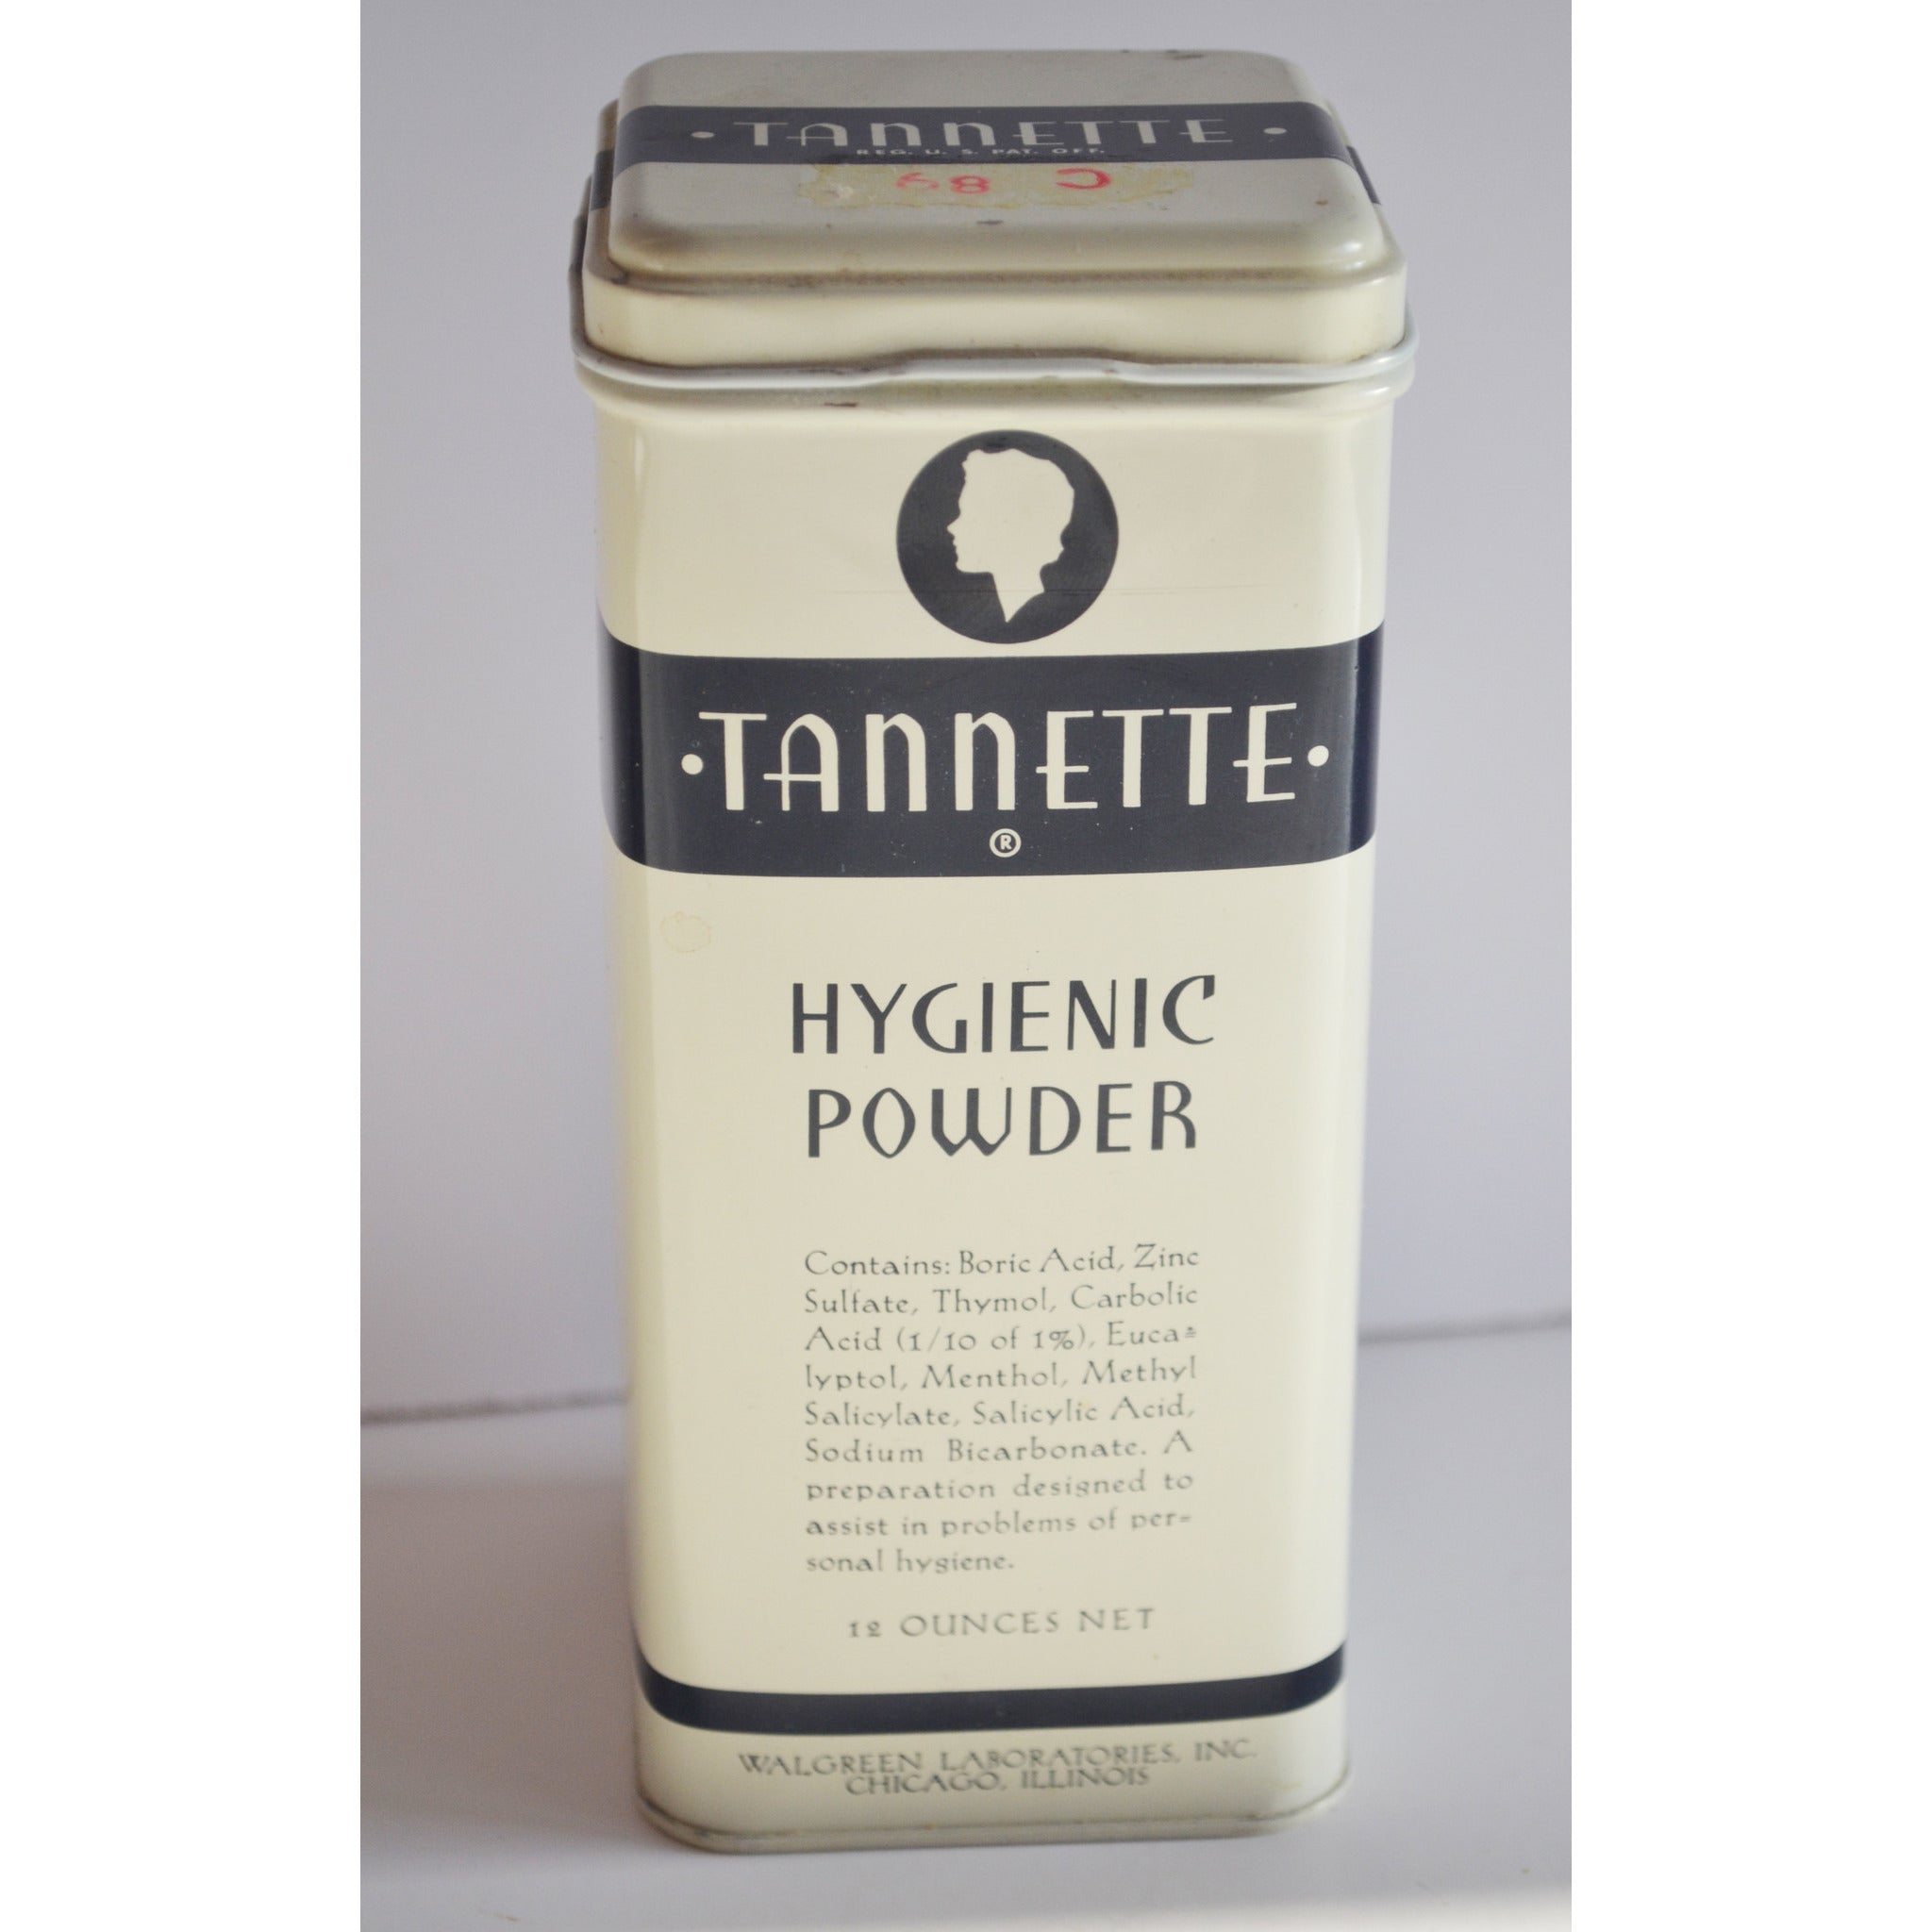 Vintage Tannette Hygenic Powder By Walgreens